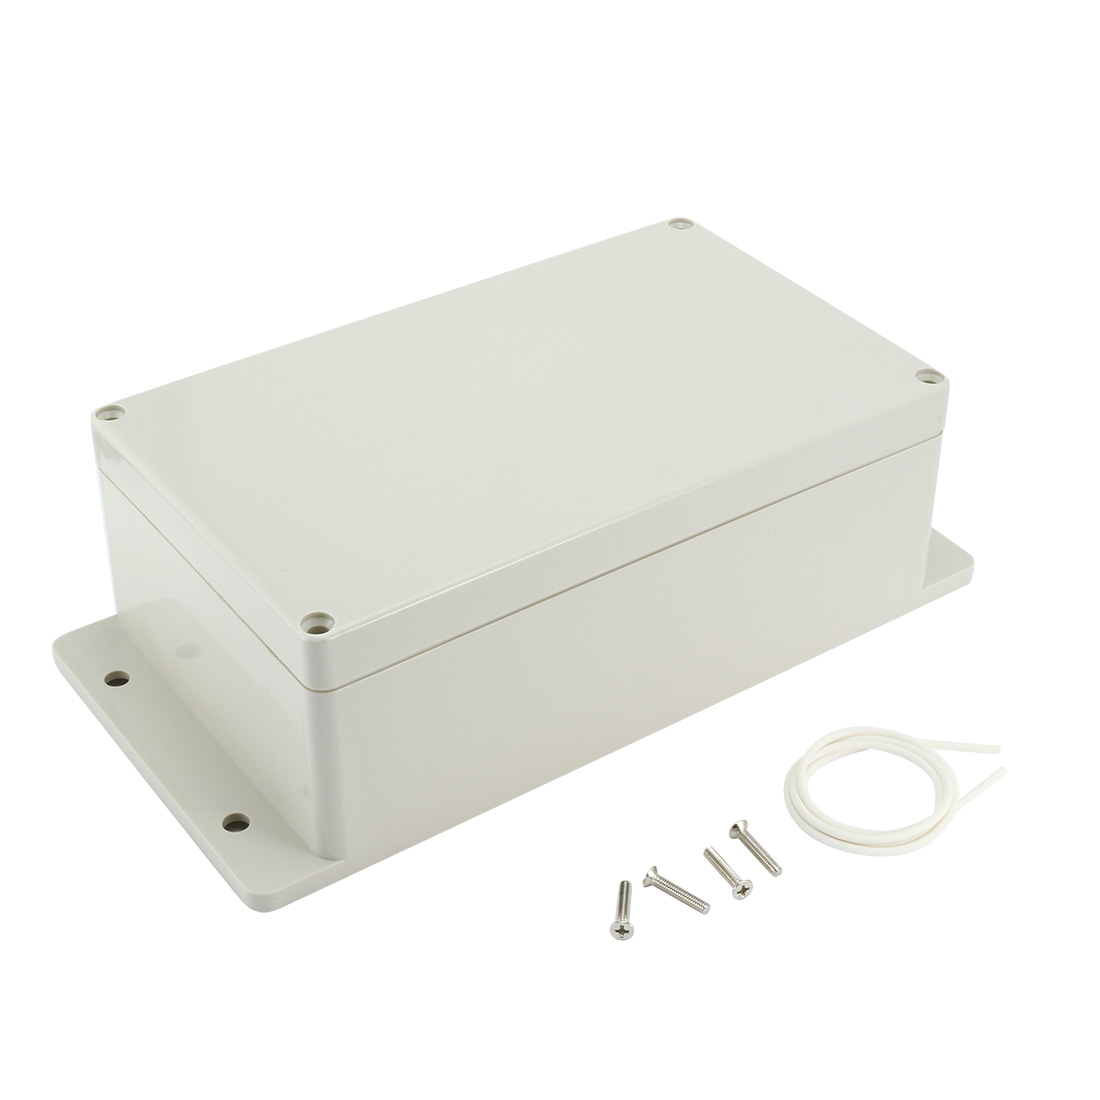 "7.9""x4.7""x2.95"" ABS Junction Box Universal Electric Project Enclosure"